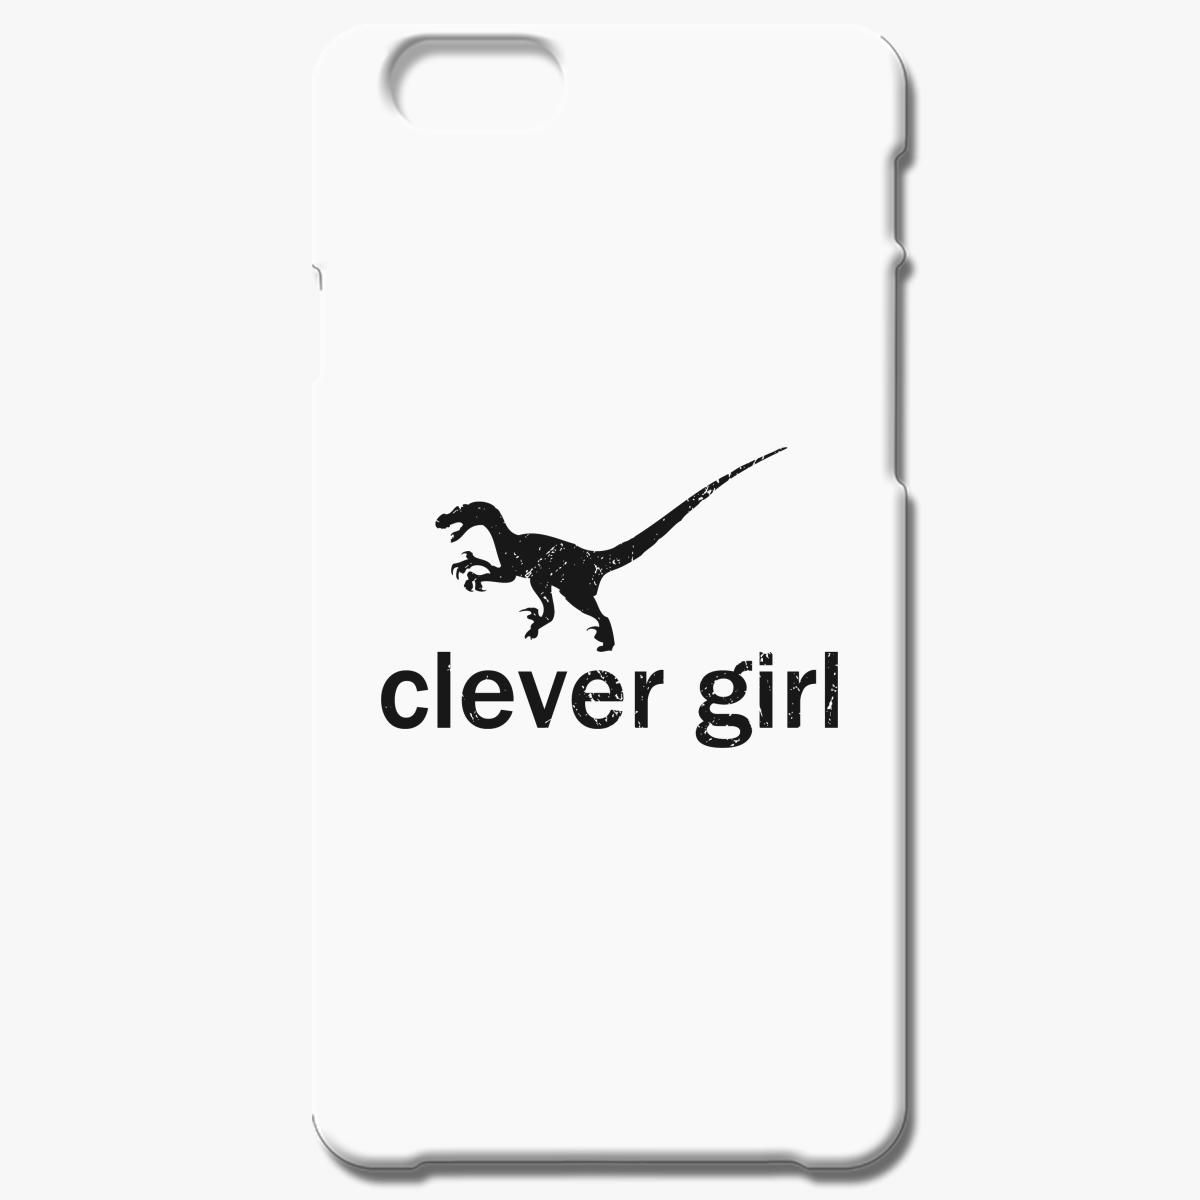 Clever Girl 2 Iphone 6 6s Plus Case